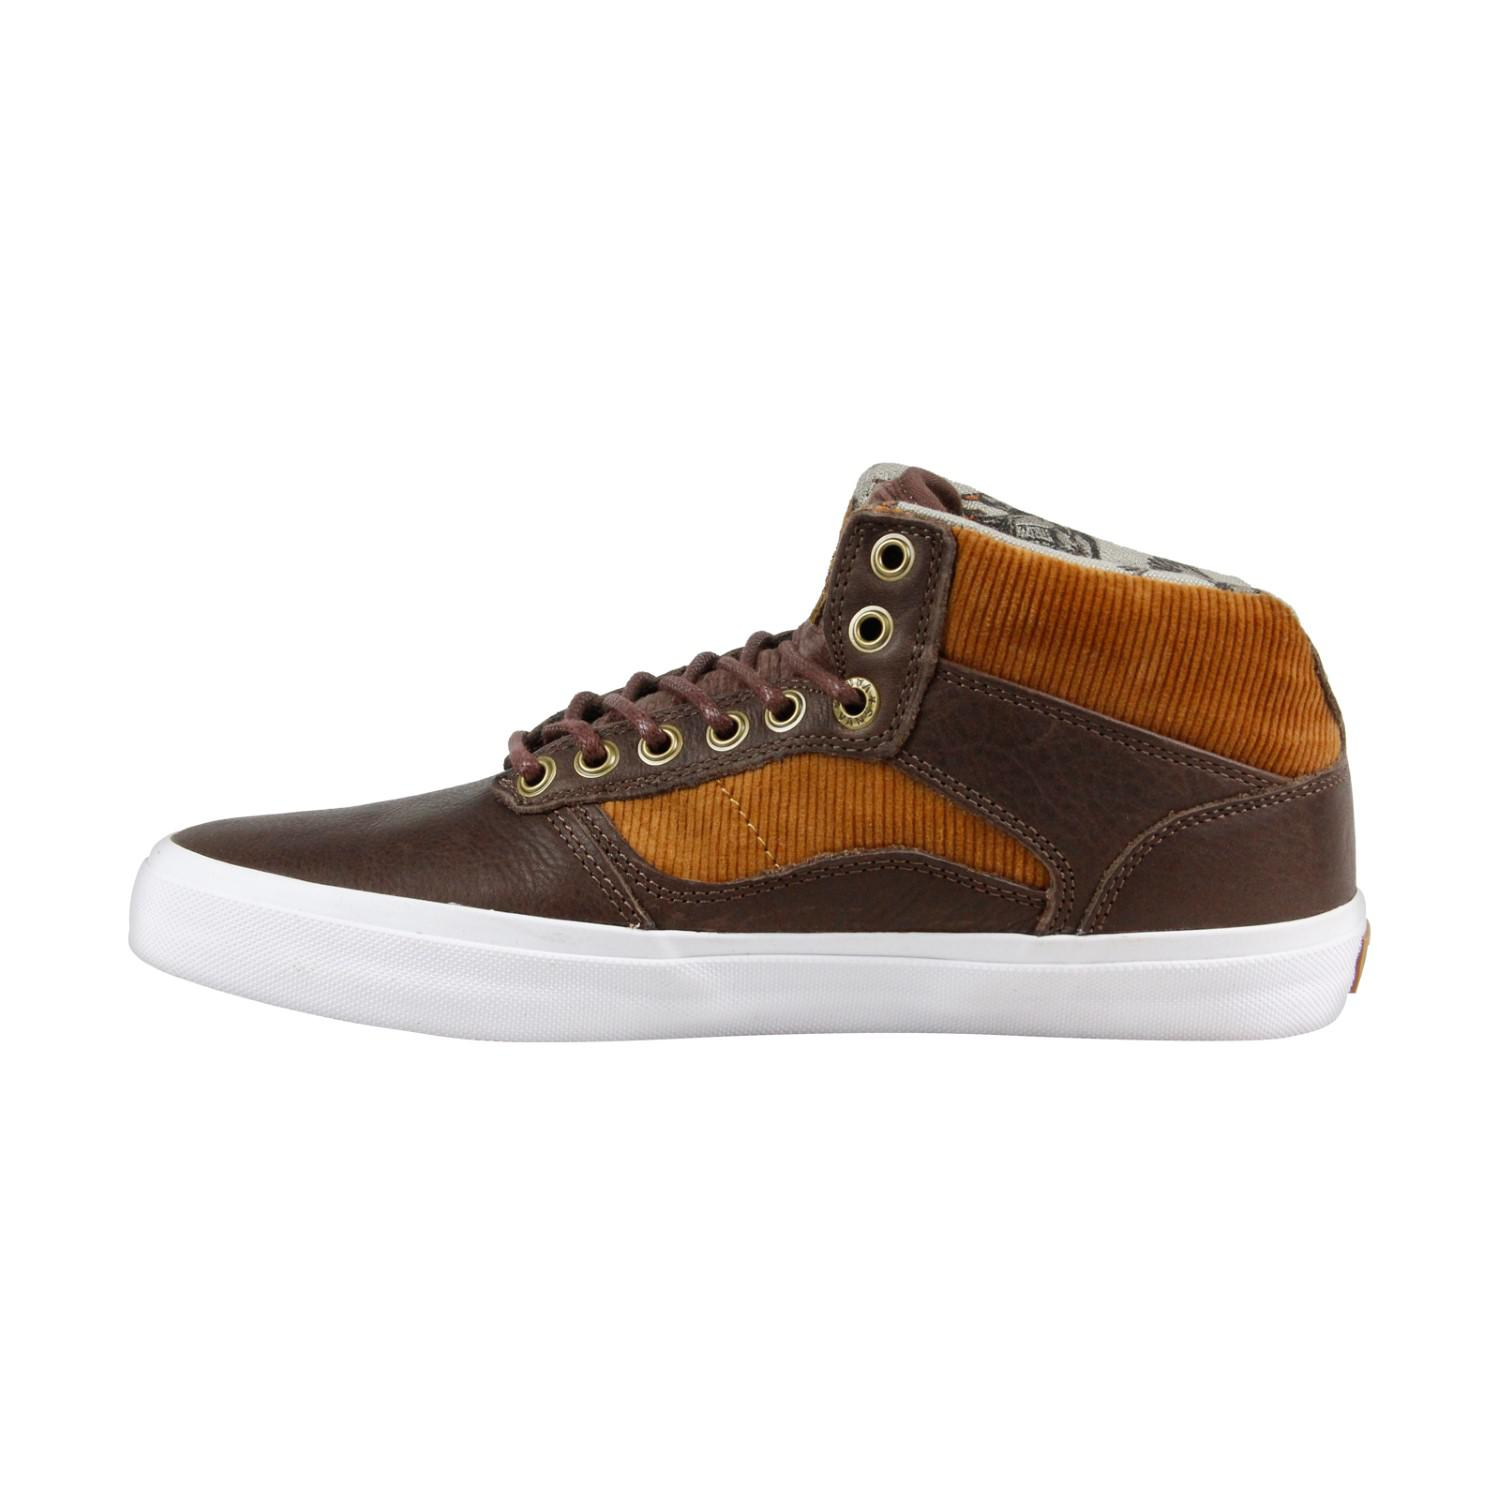 3eb39a02566310 Lyst - Vans Bedford Duck Hunt Brown White Mens High Top Sneakers in ...